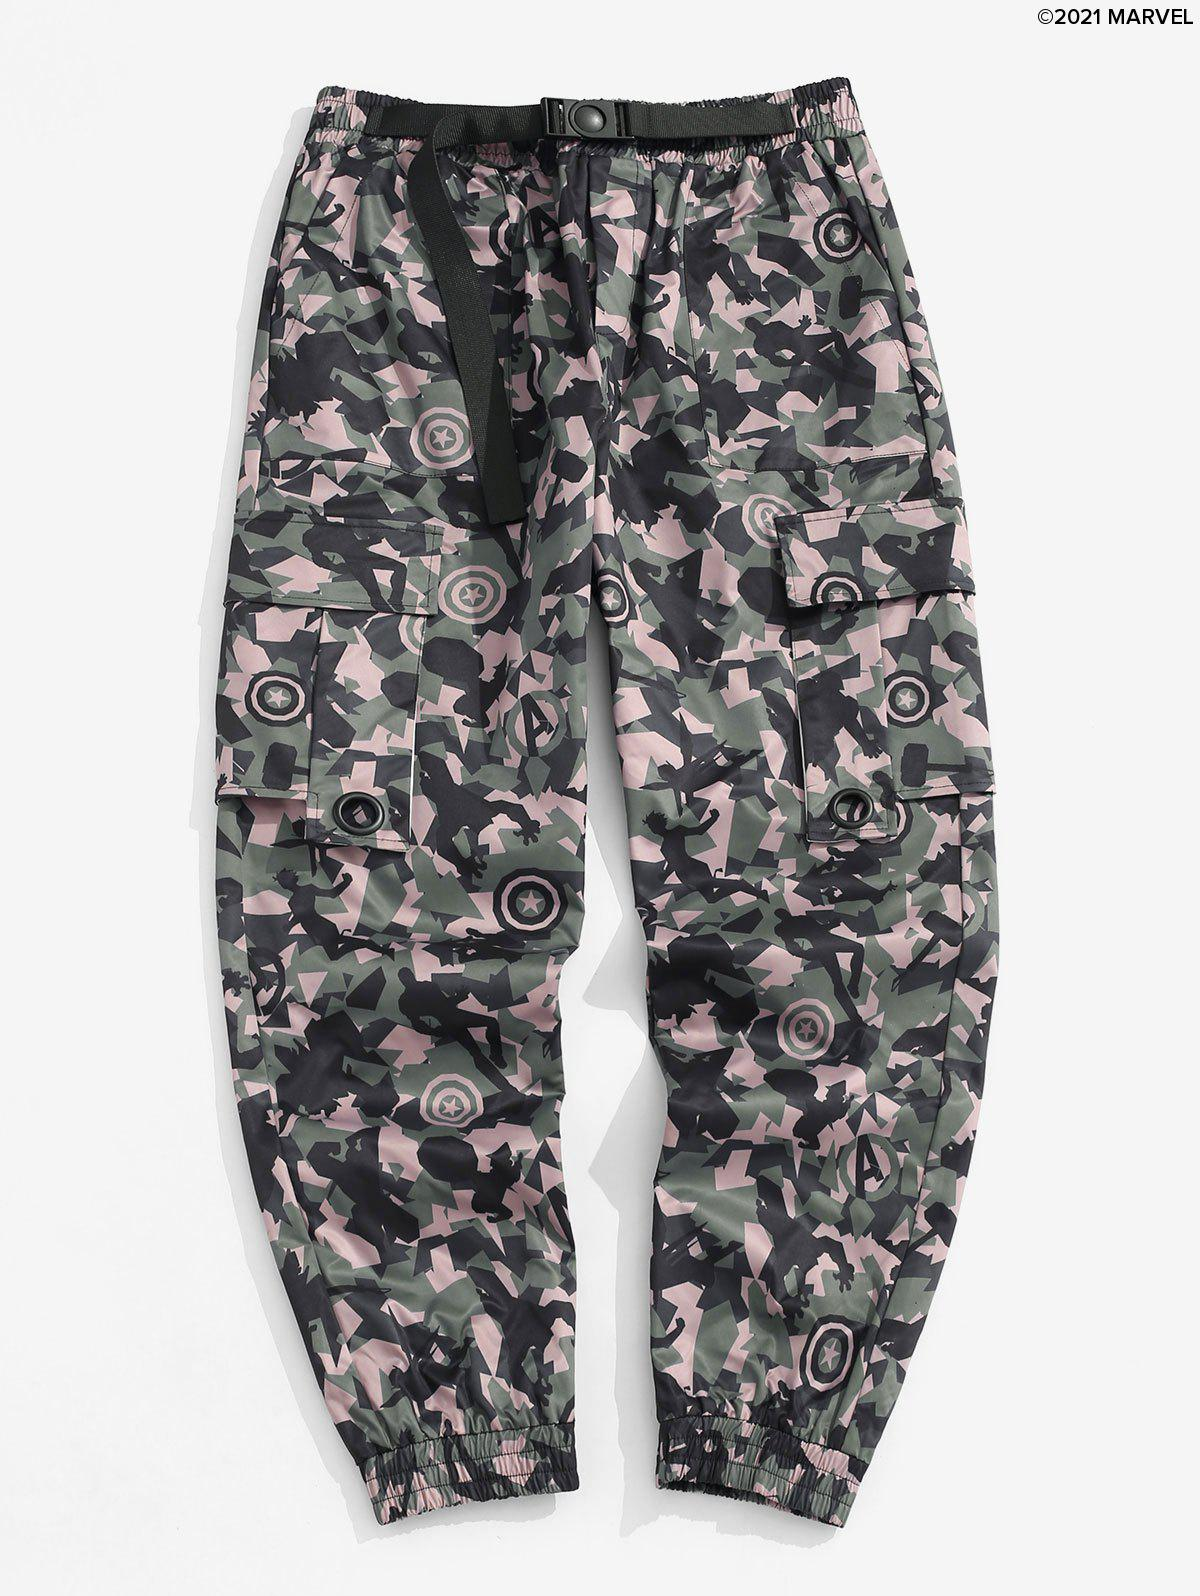 Hot Marvel Spider-Man Camouflage Print Tapered Cargo Pants